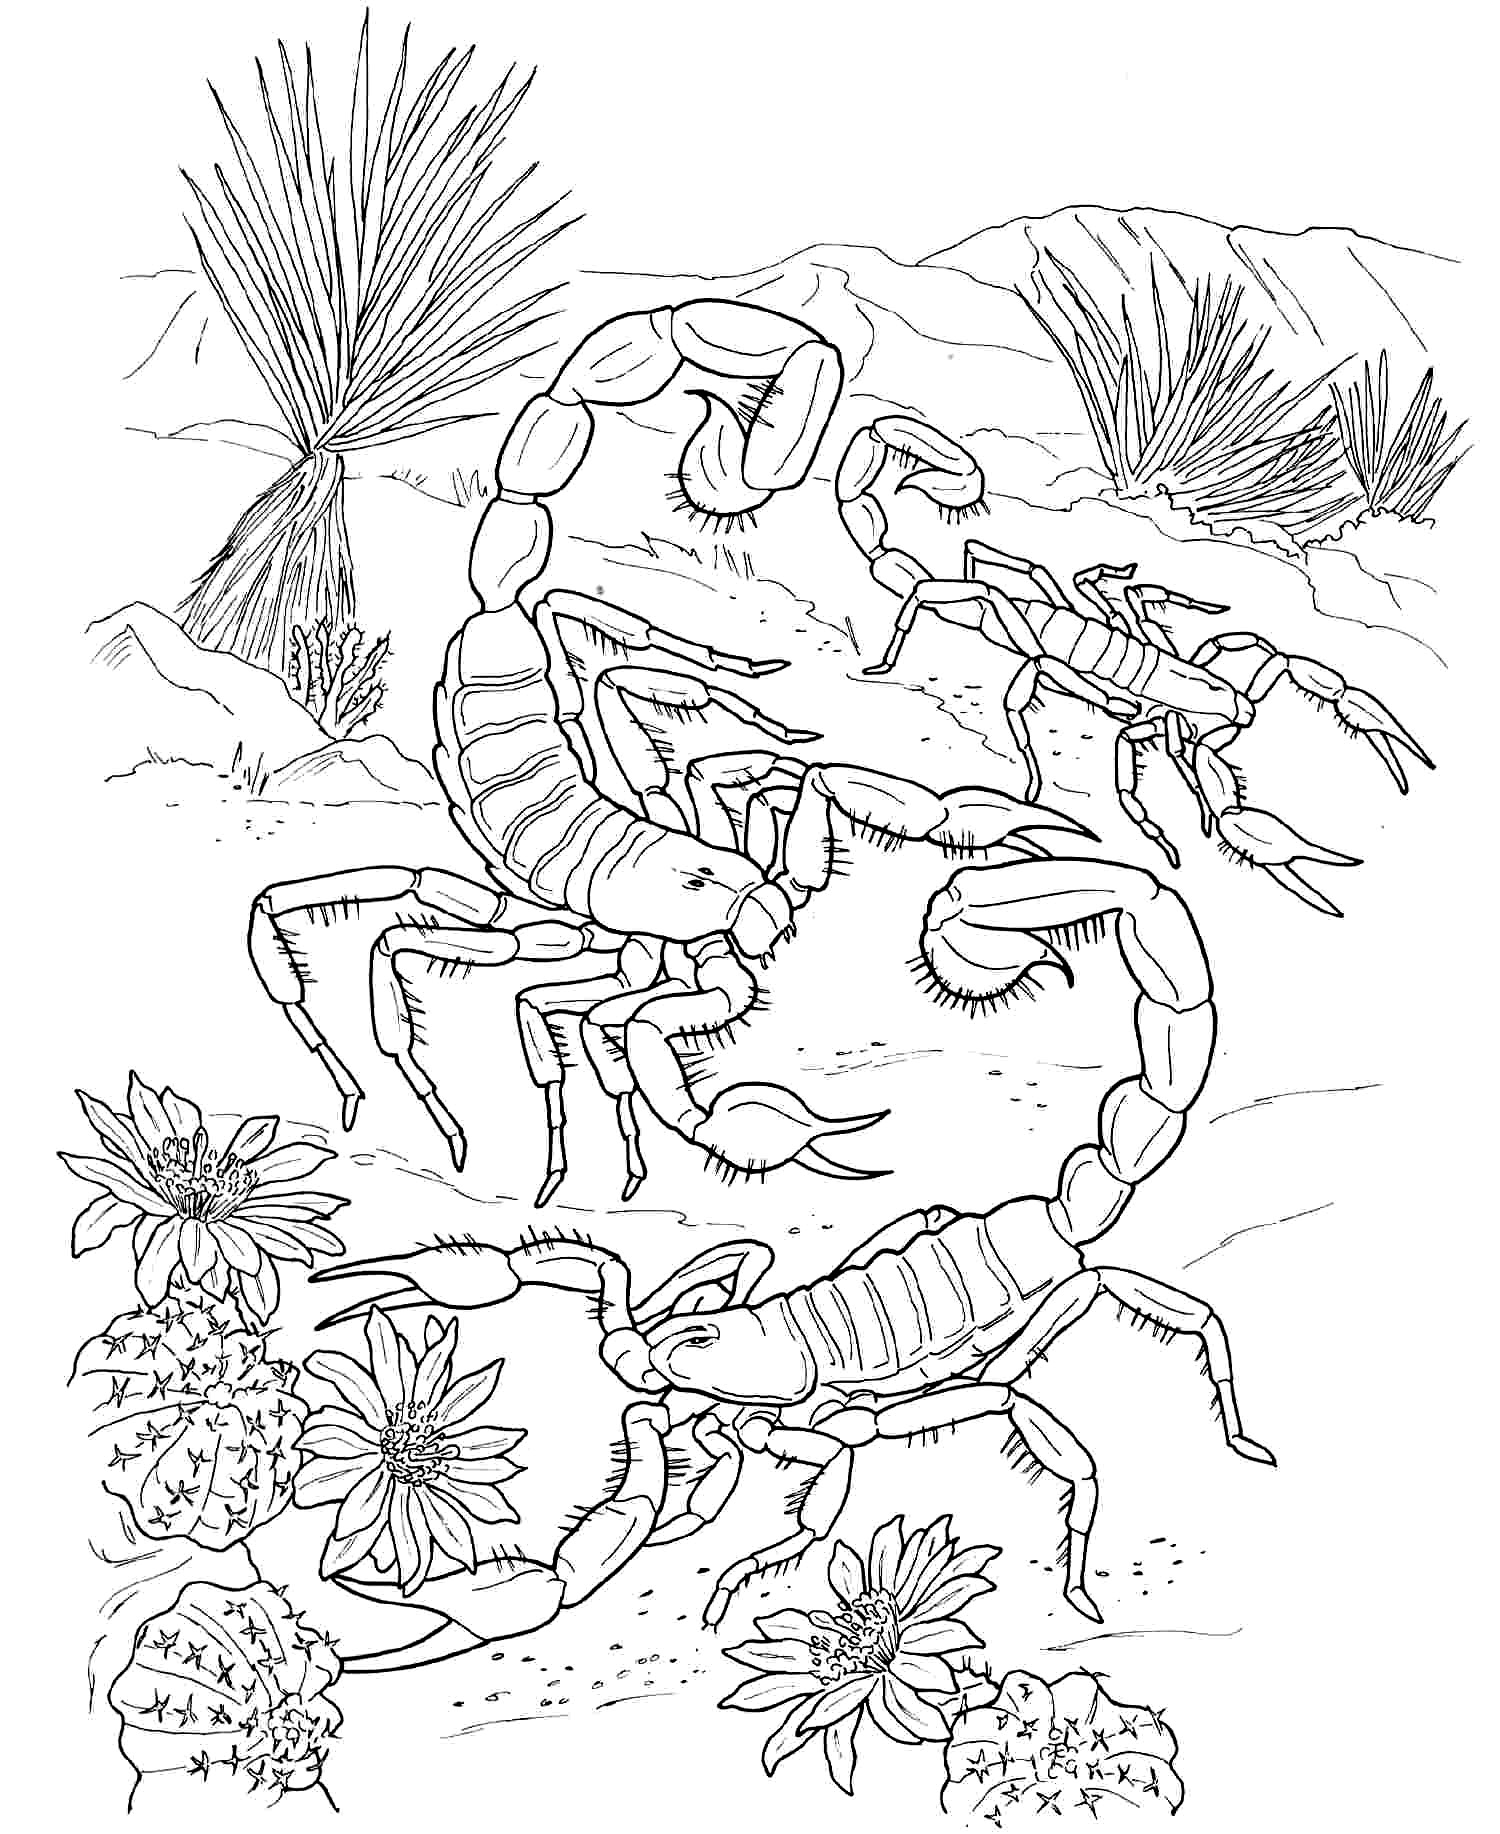 Scorpion Coloring Pages To Download And Print Sketch ...